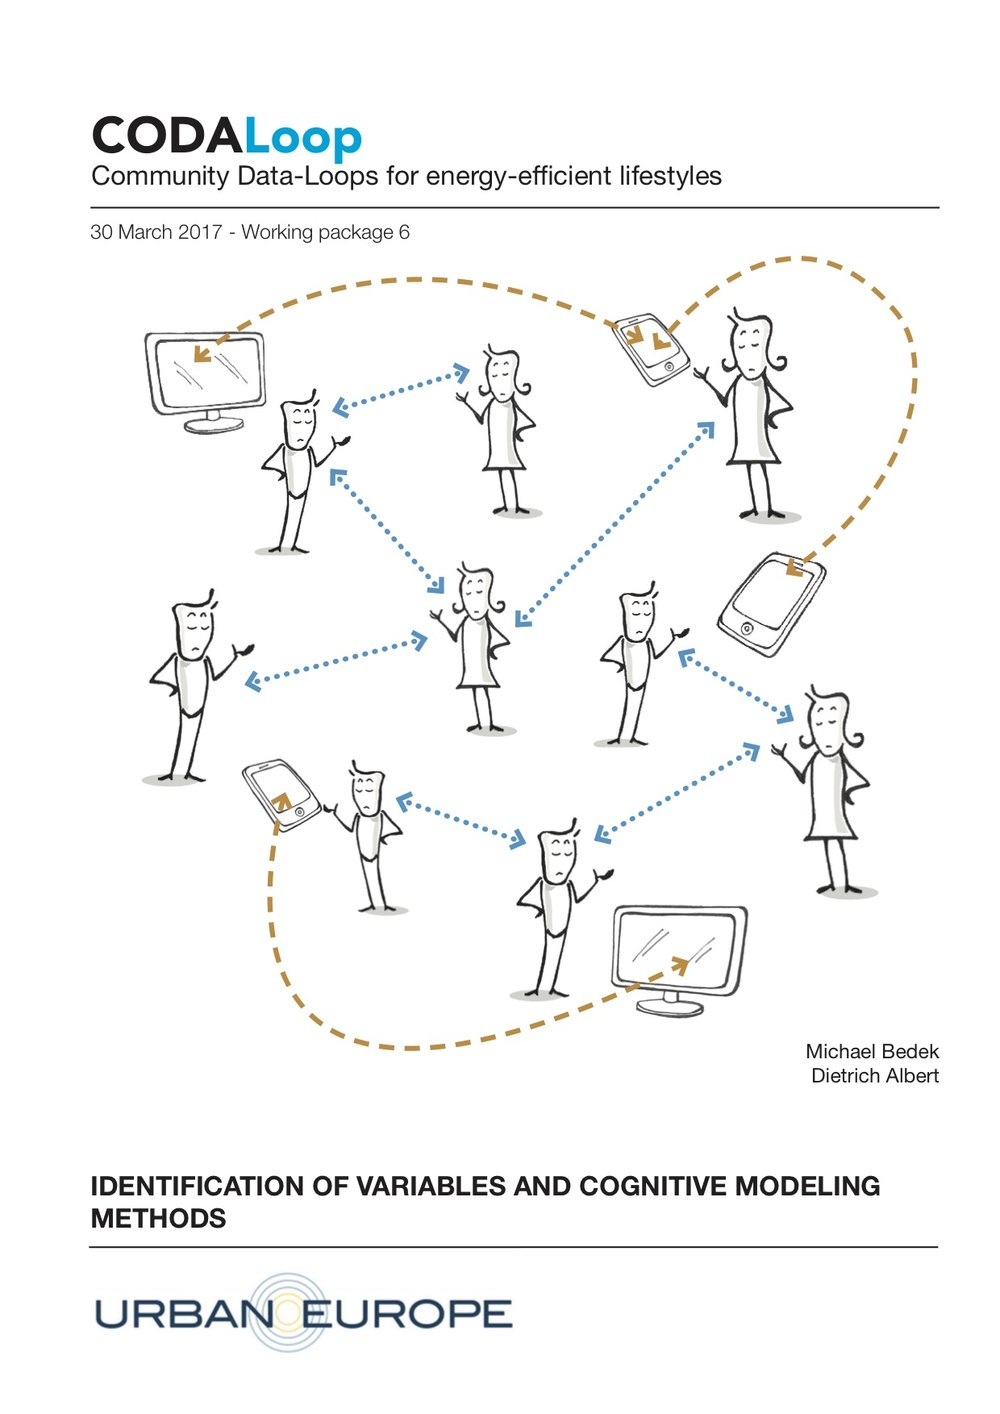 Working package 6 - Cognitive modeling (leader TU Graz)This WP specifically addresses the learning and adaptation aspect within each feedback loop. TU Graz will improve on existing mathematical models to investigate individual and community learning and apply them within the context of the other research partners.